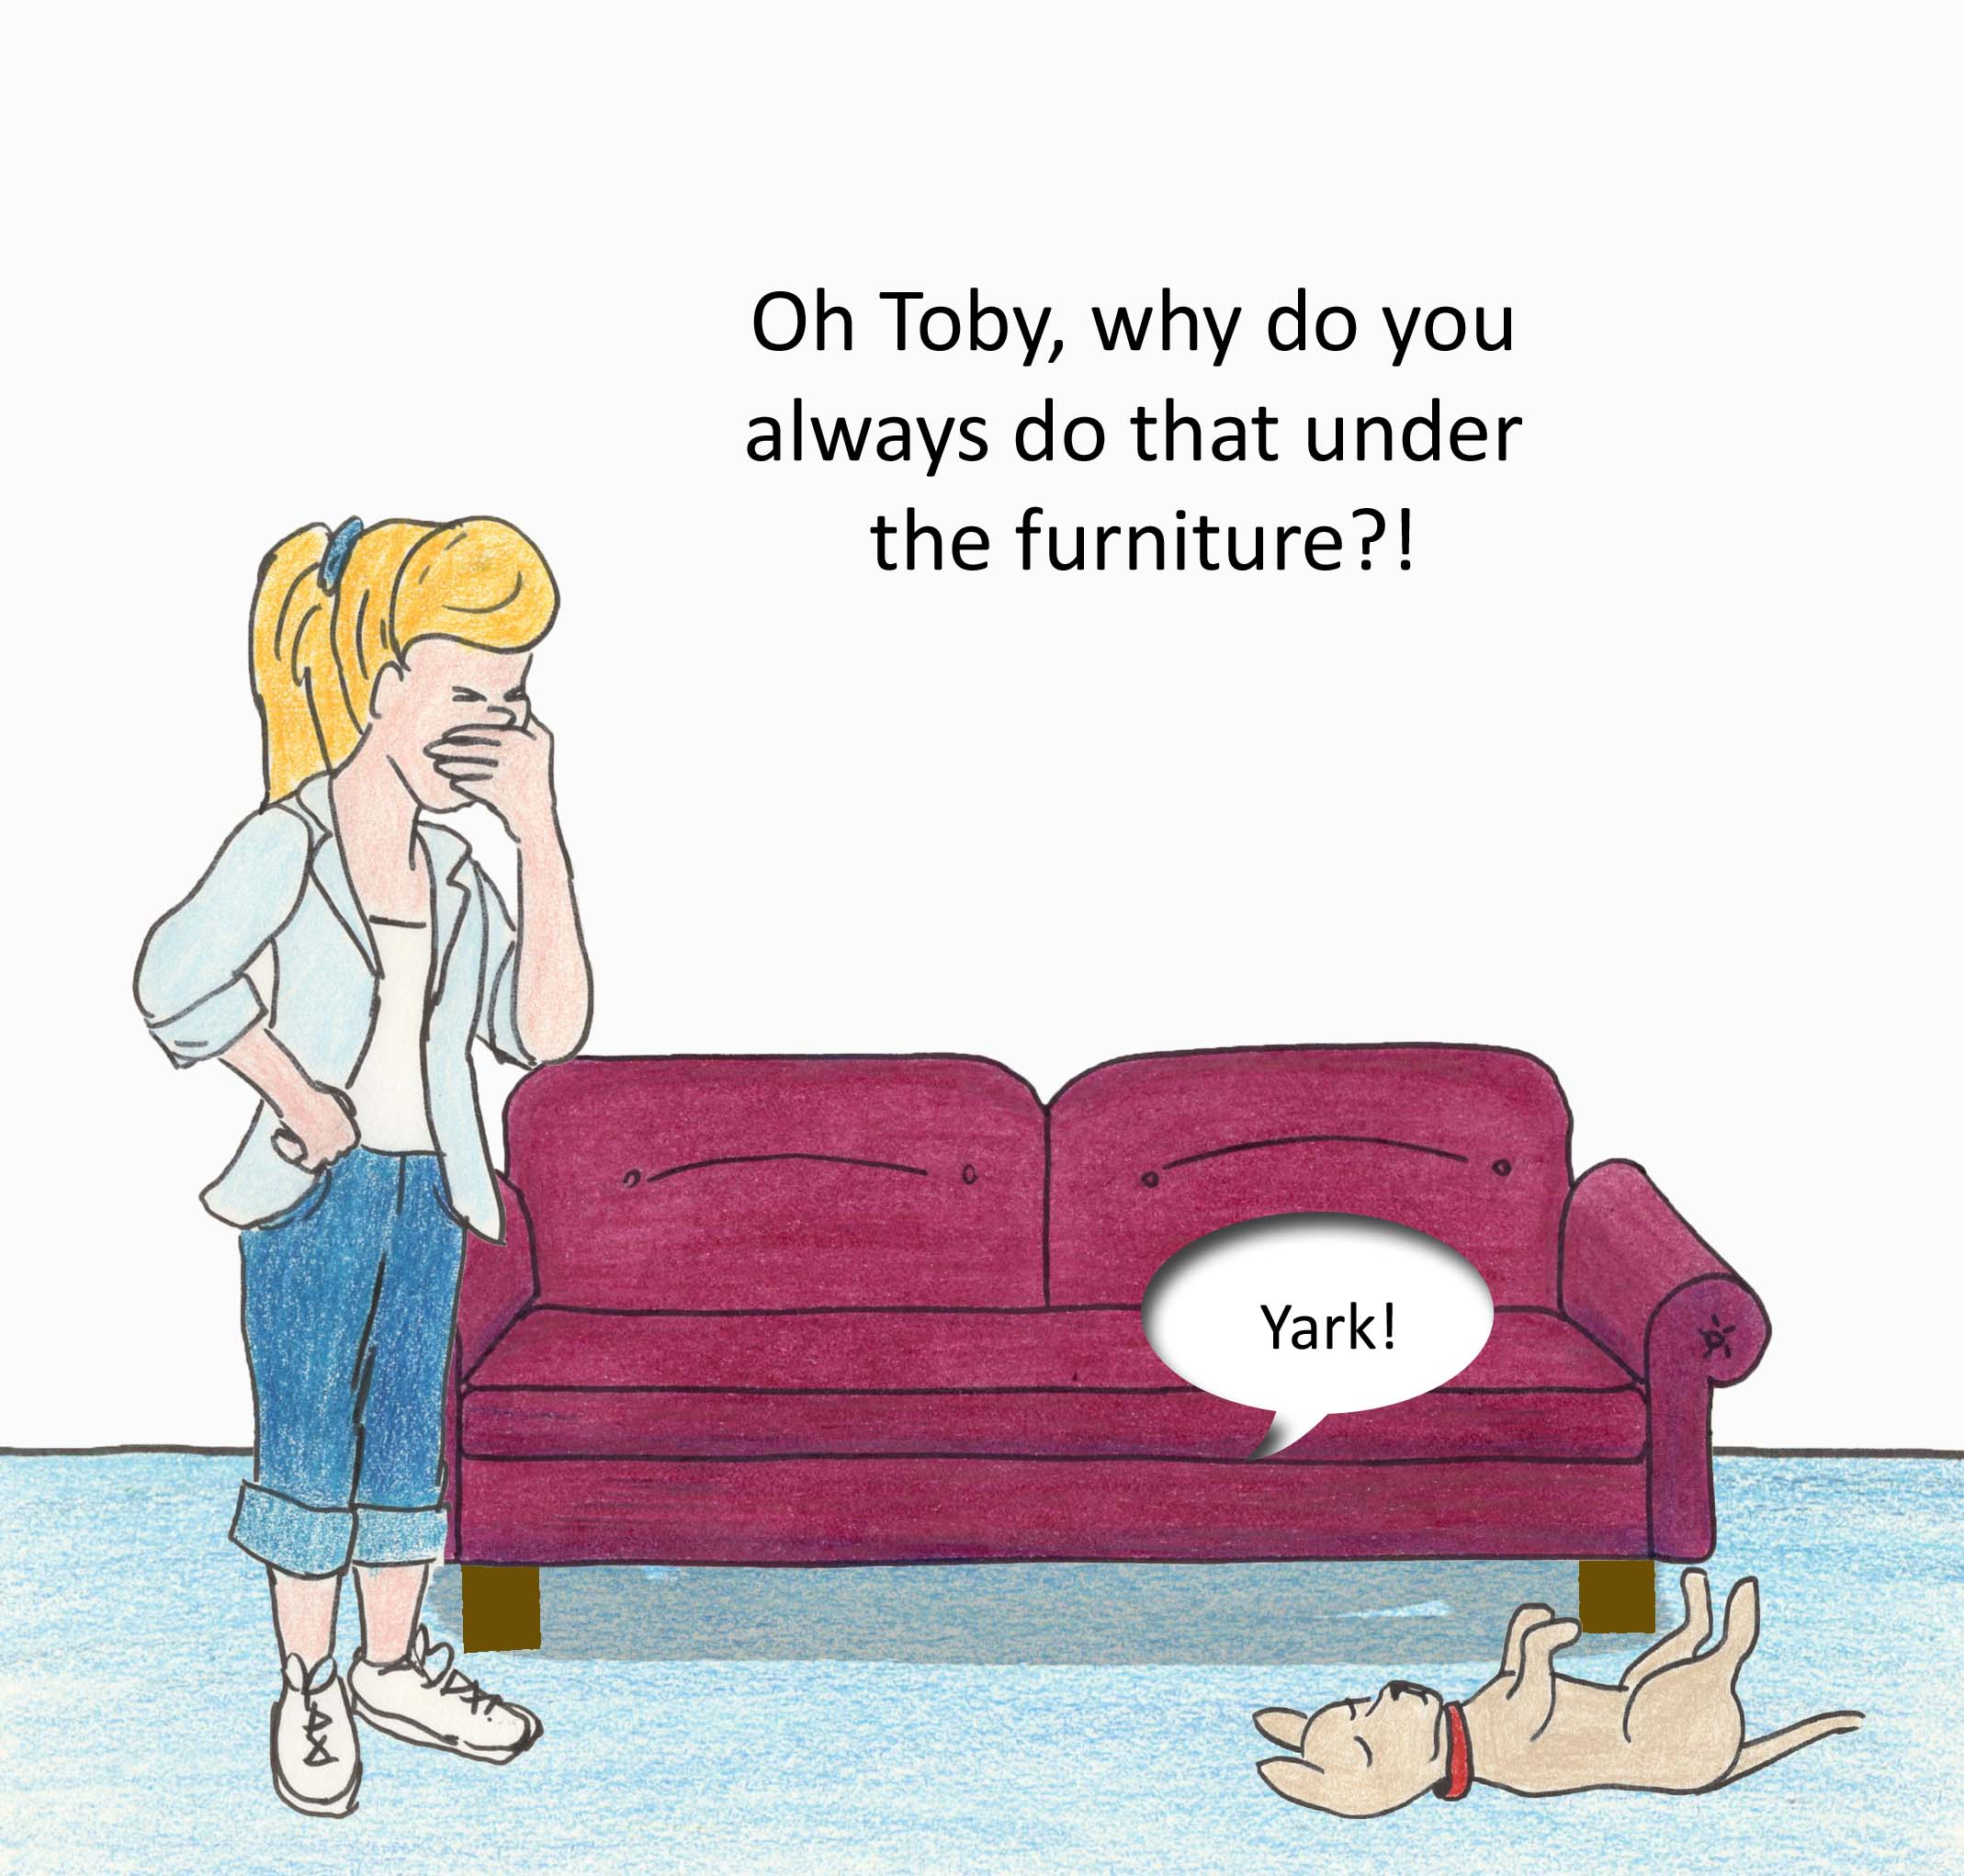 Yark!  Oh Toby, why do you always have to do that under the furniture?